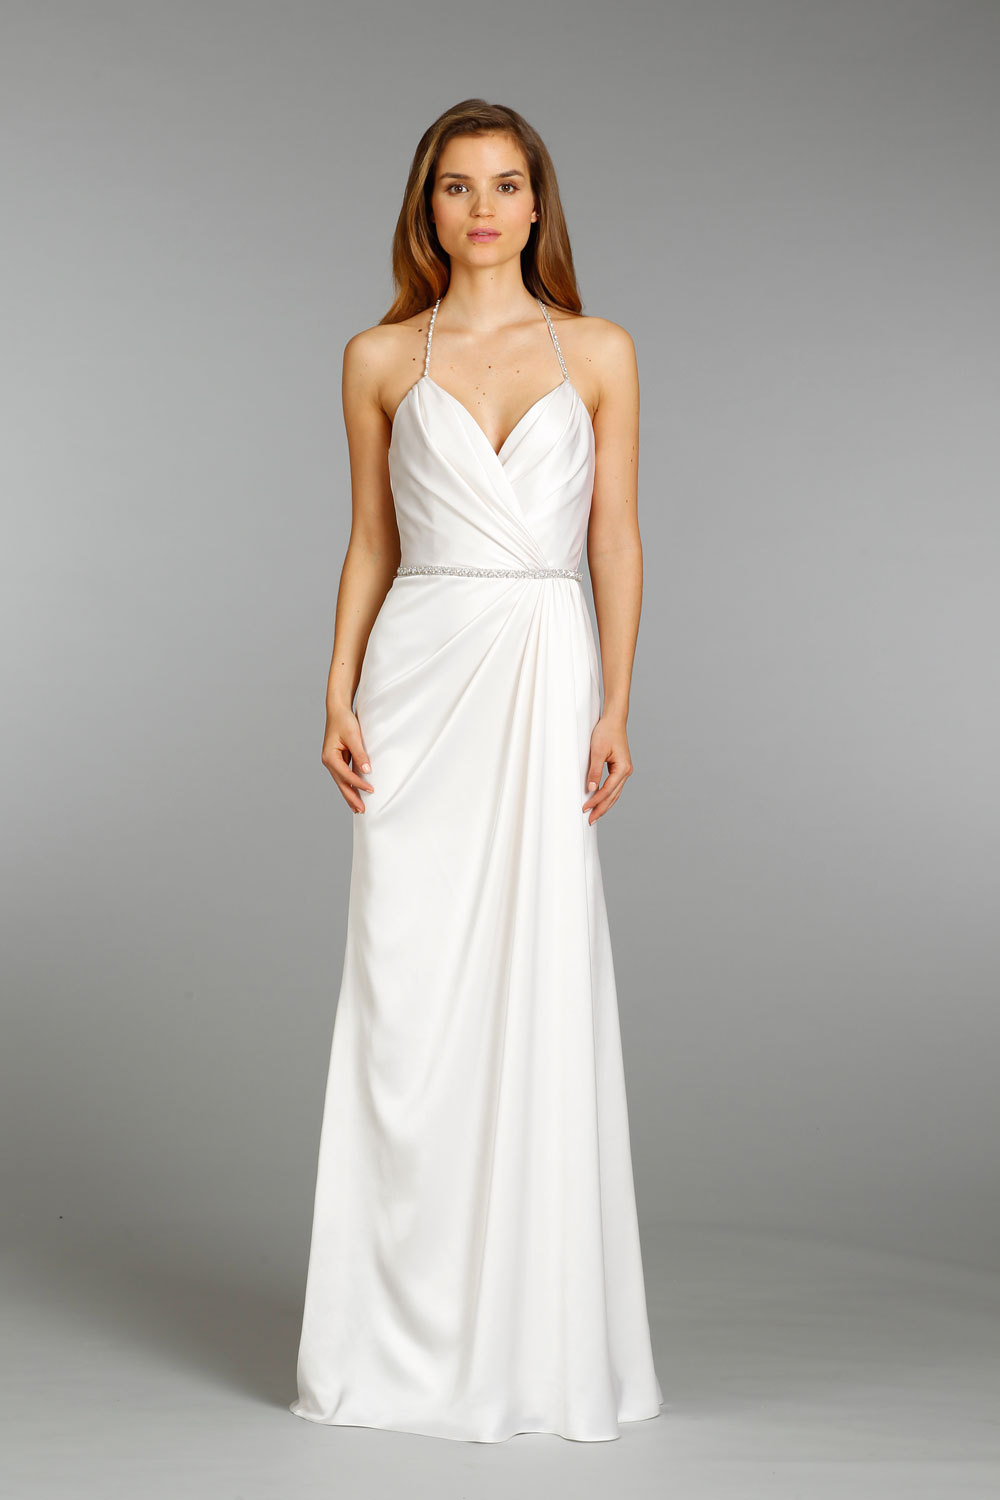 used jim hjelm wedding dresses used designer wedding dresses Used Jim Hjelm Wedding Dresses 84